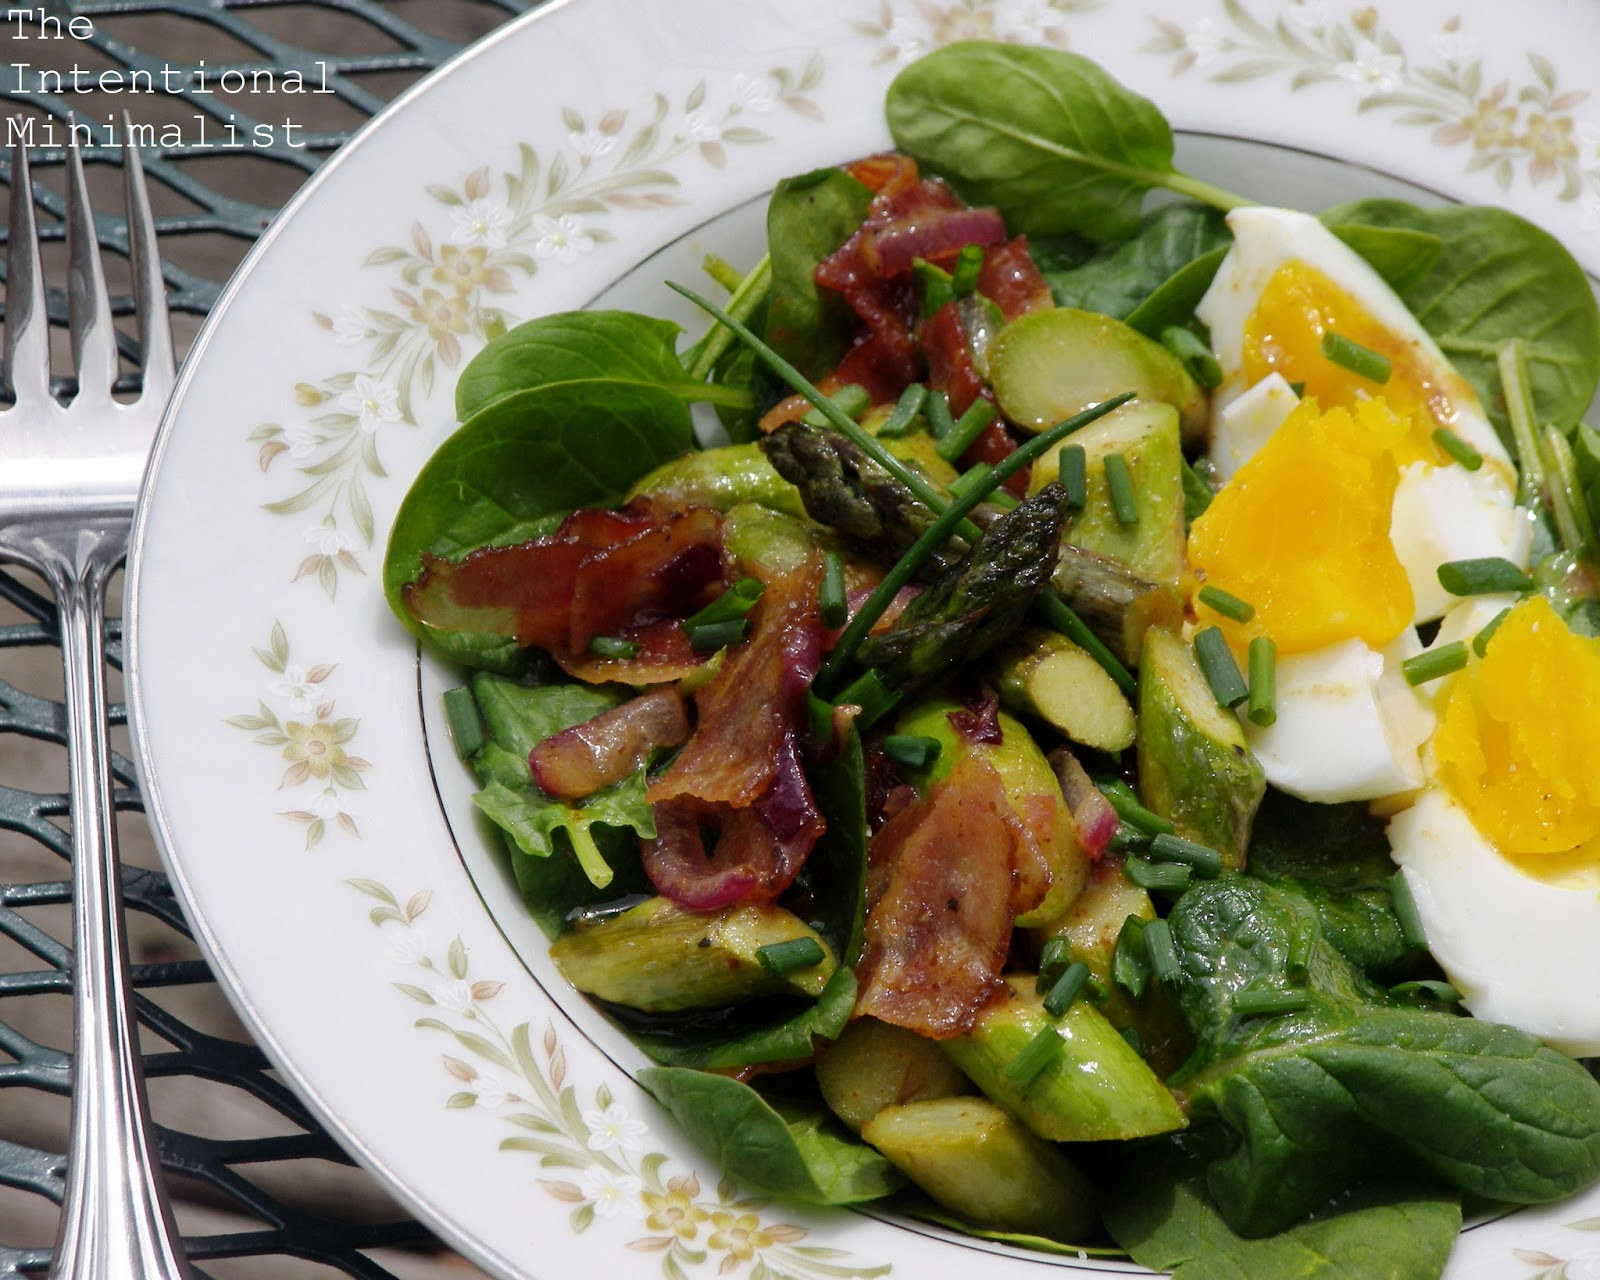 ... : Wilted Spinach and Asparagus Salad with Warm Honey Mustard Dressing